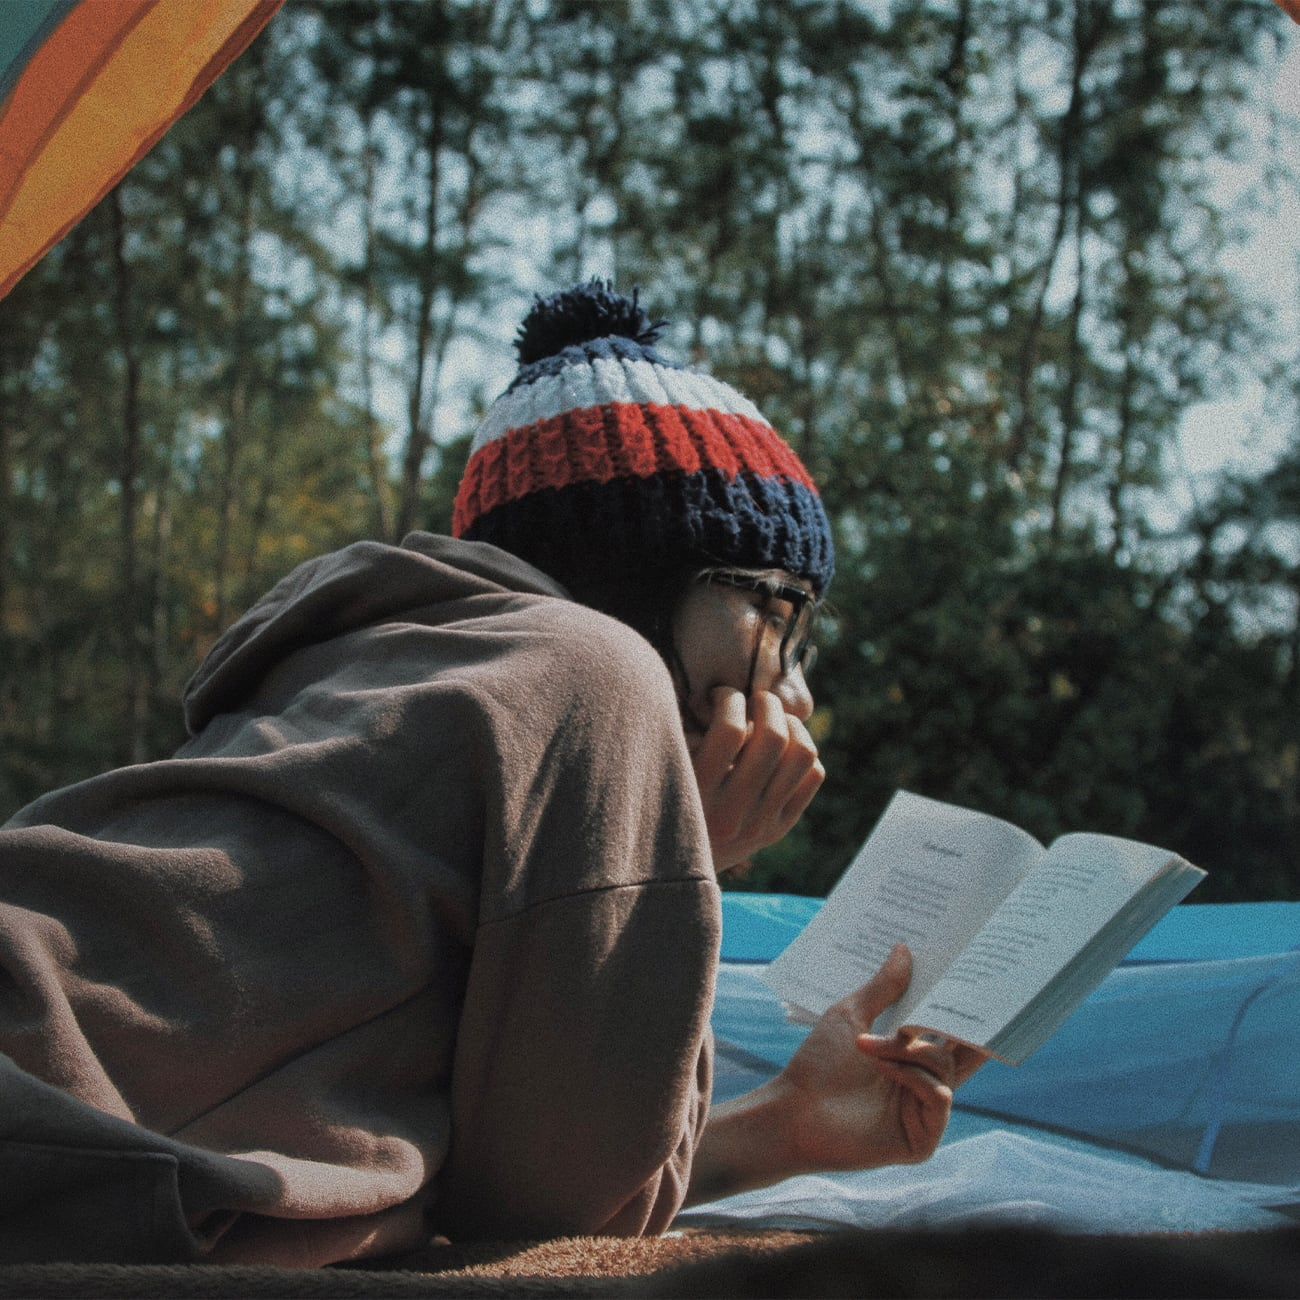 Woman reading book from inside tent